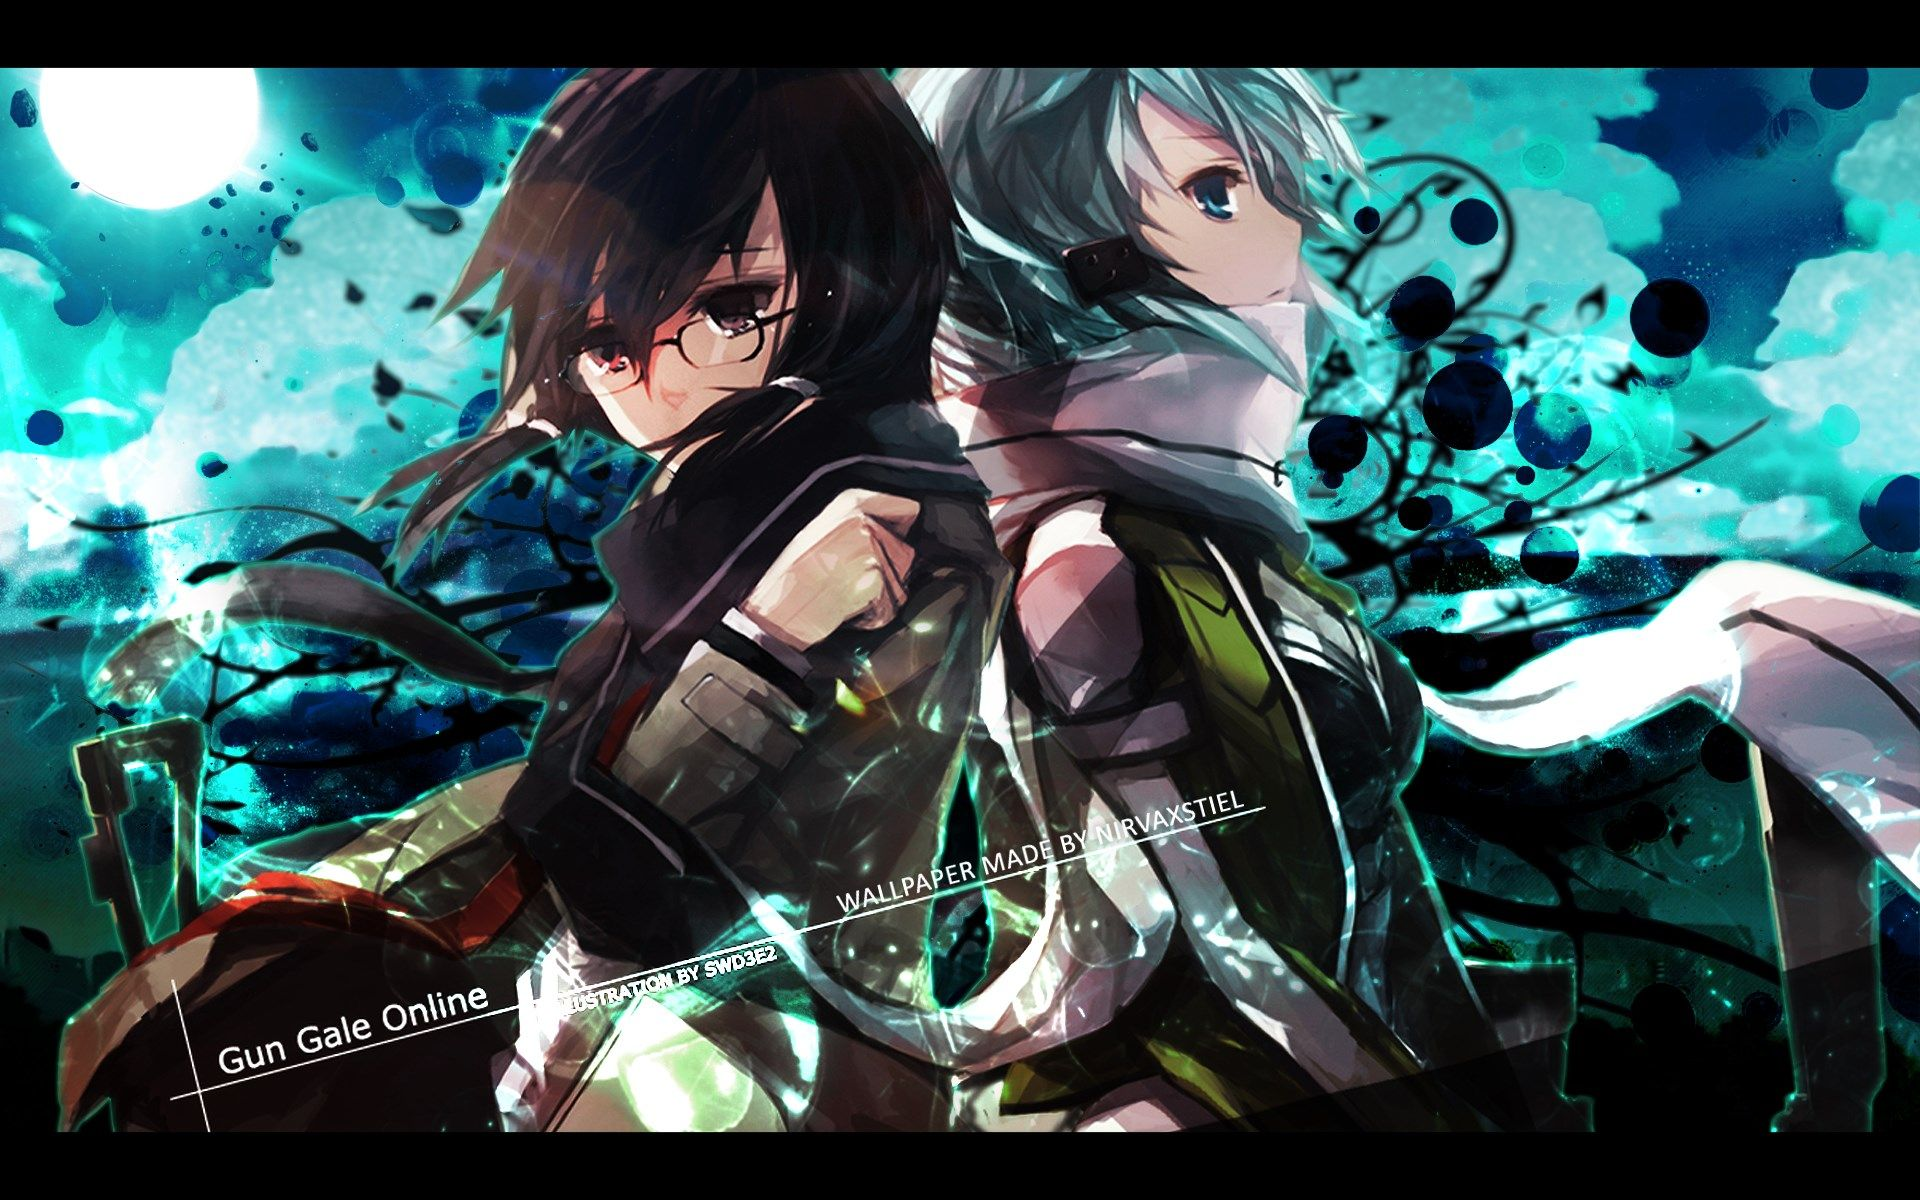 Wallpaper For Desktop Sword Art Online Ii Sword Art Online